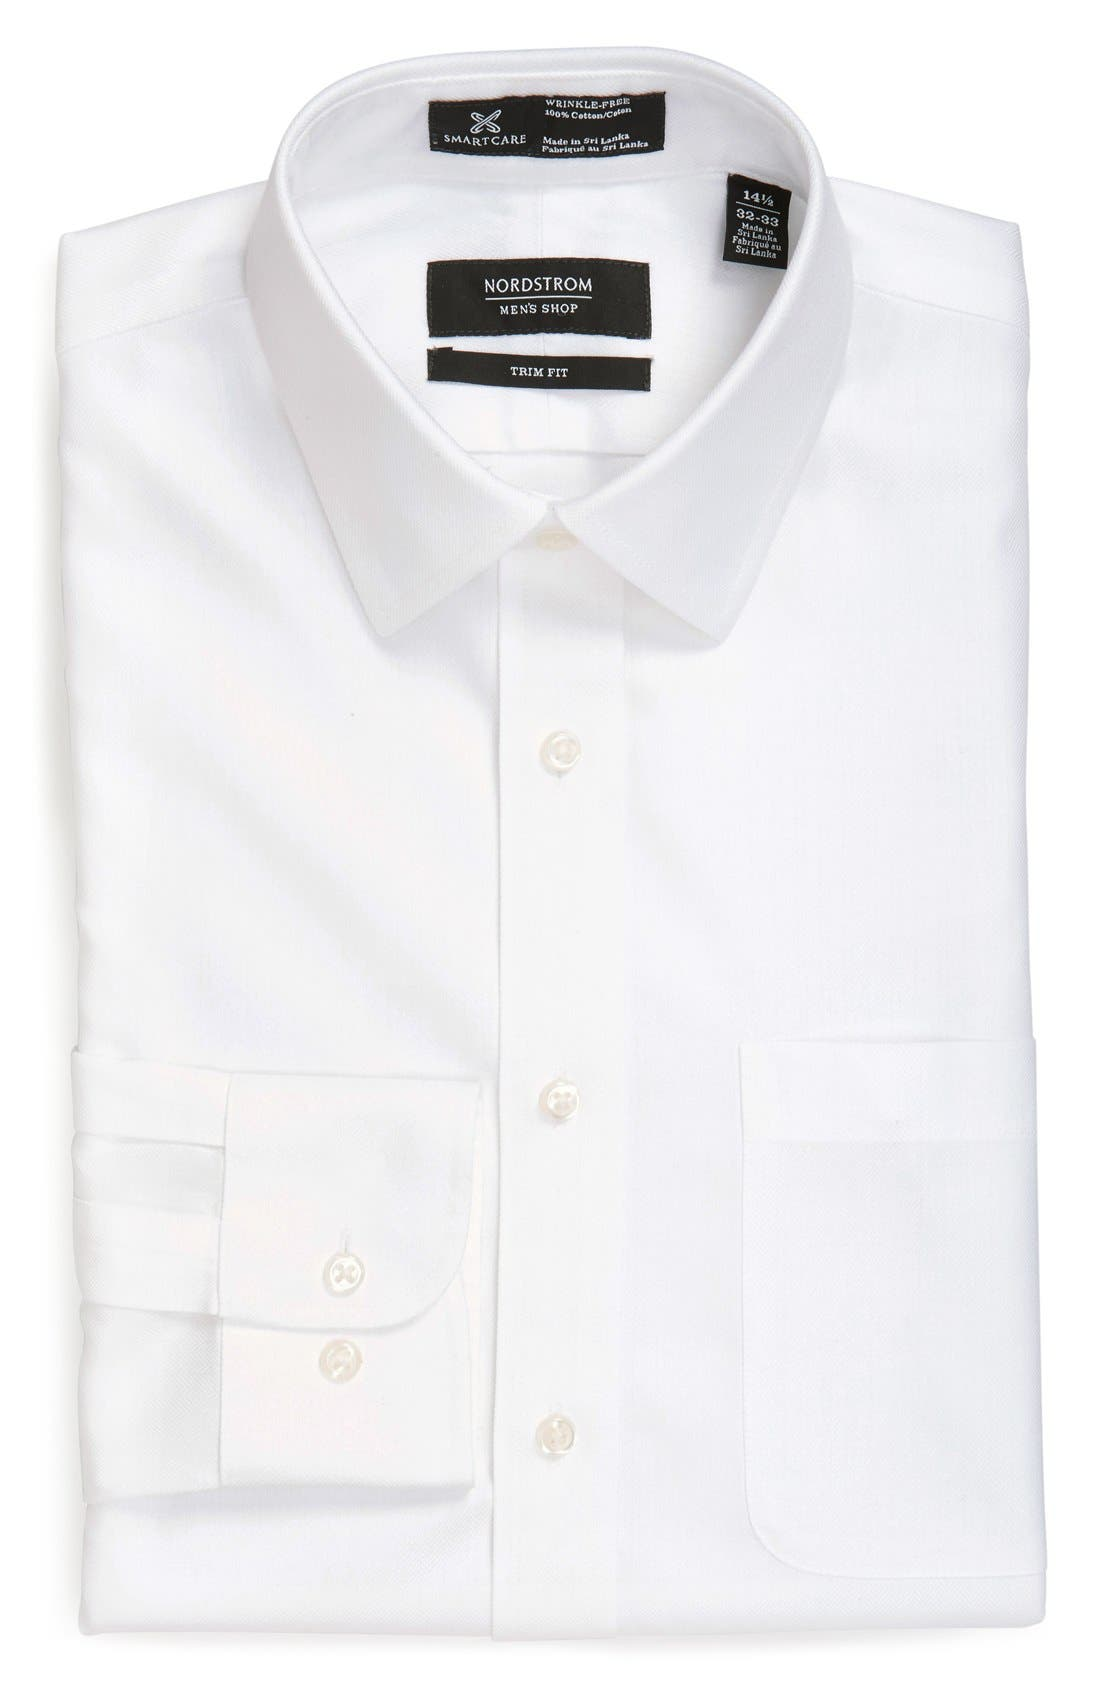 Nordstrom Men's Shop Smartcare™ Trim Fit Herringbone Dress Shirt